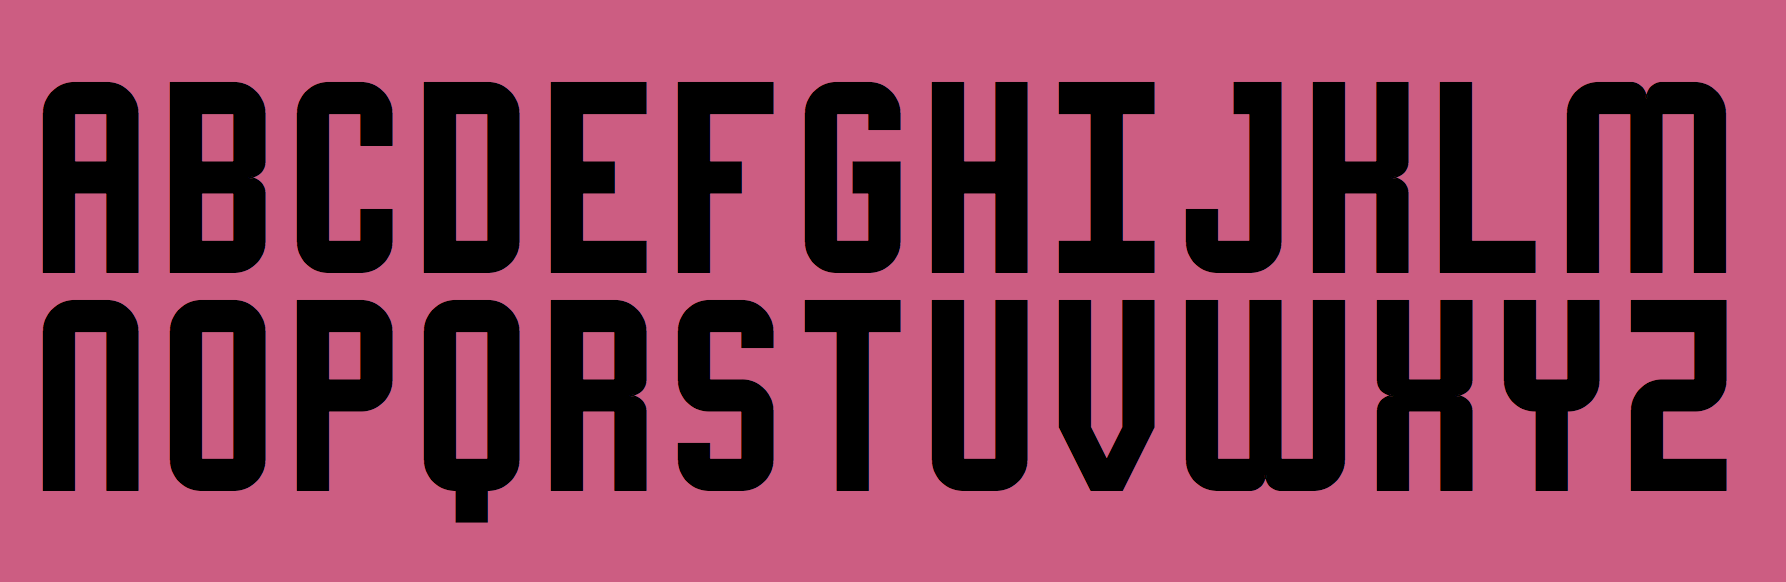 Geronimo Fonts (or: Paradox Fontworks, or: Typewire Studios)